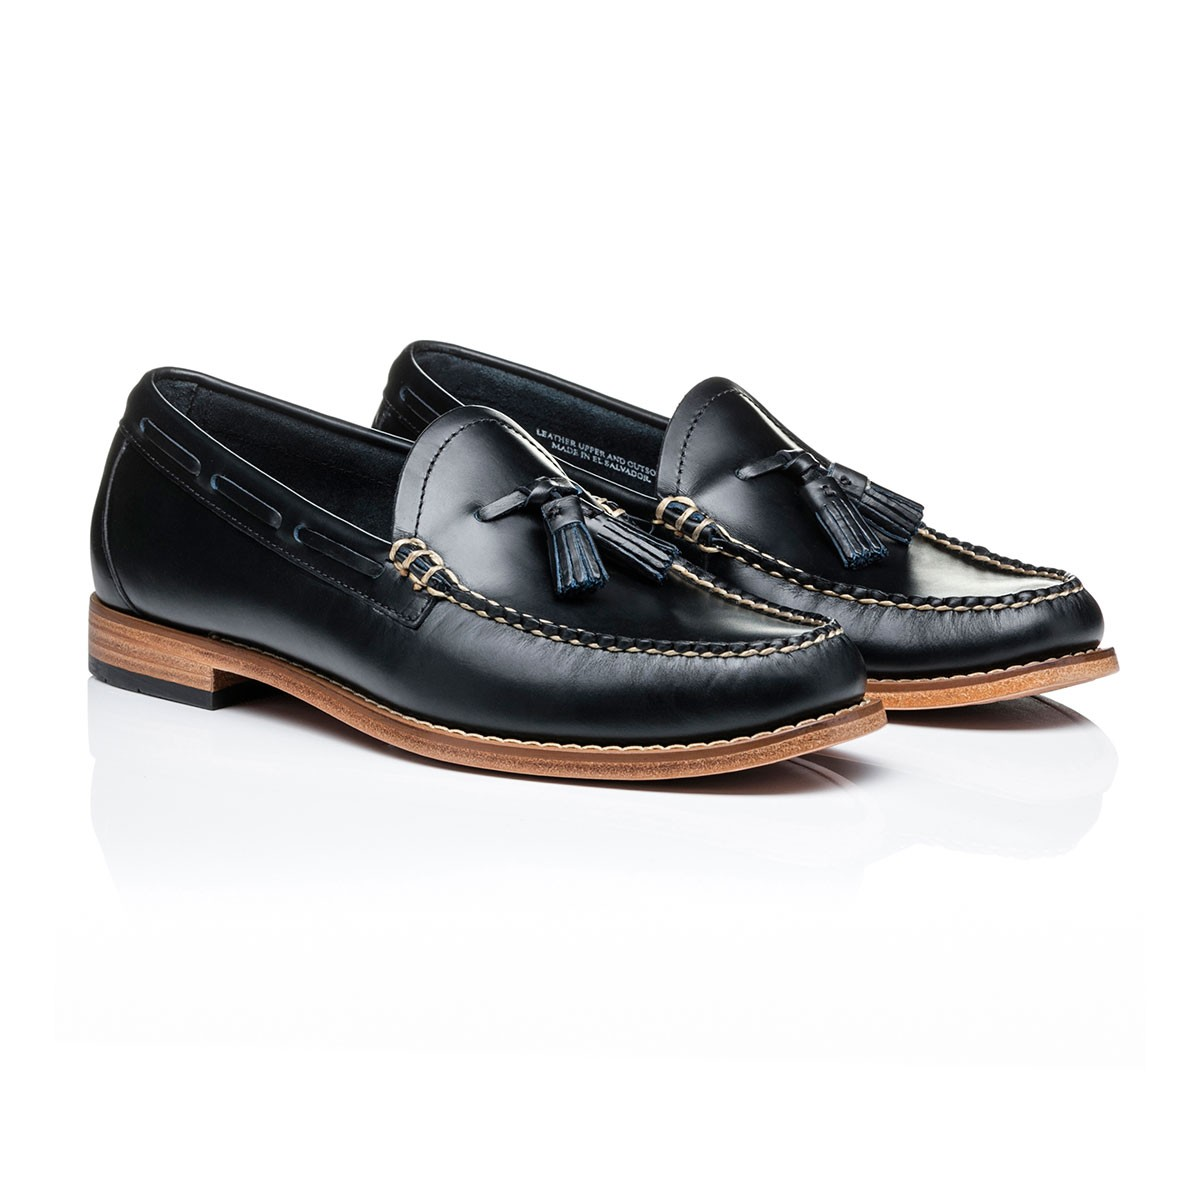 G.H. Bass & Co. Weejuns Larkin Pull Up Navy Leather